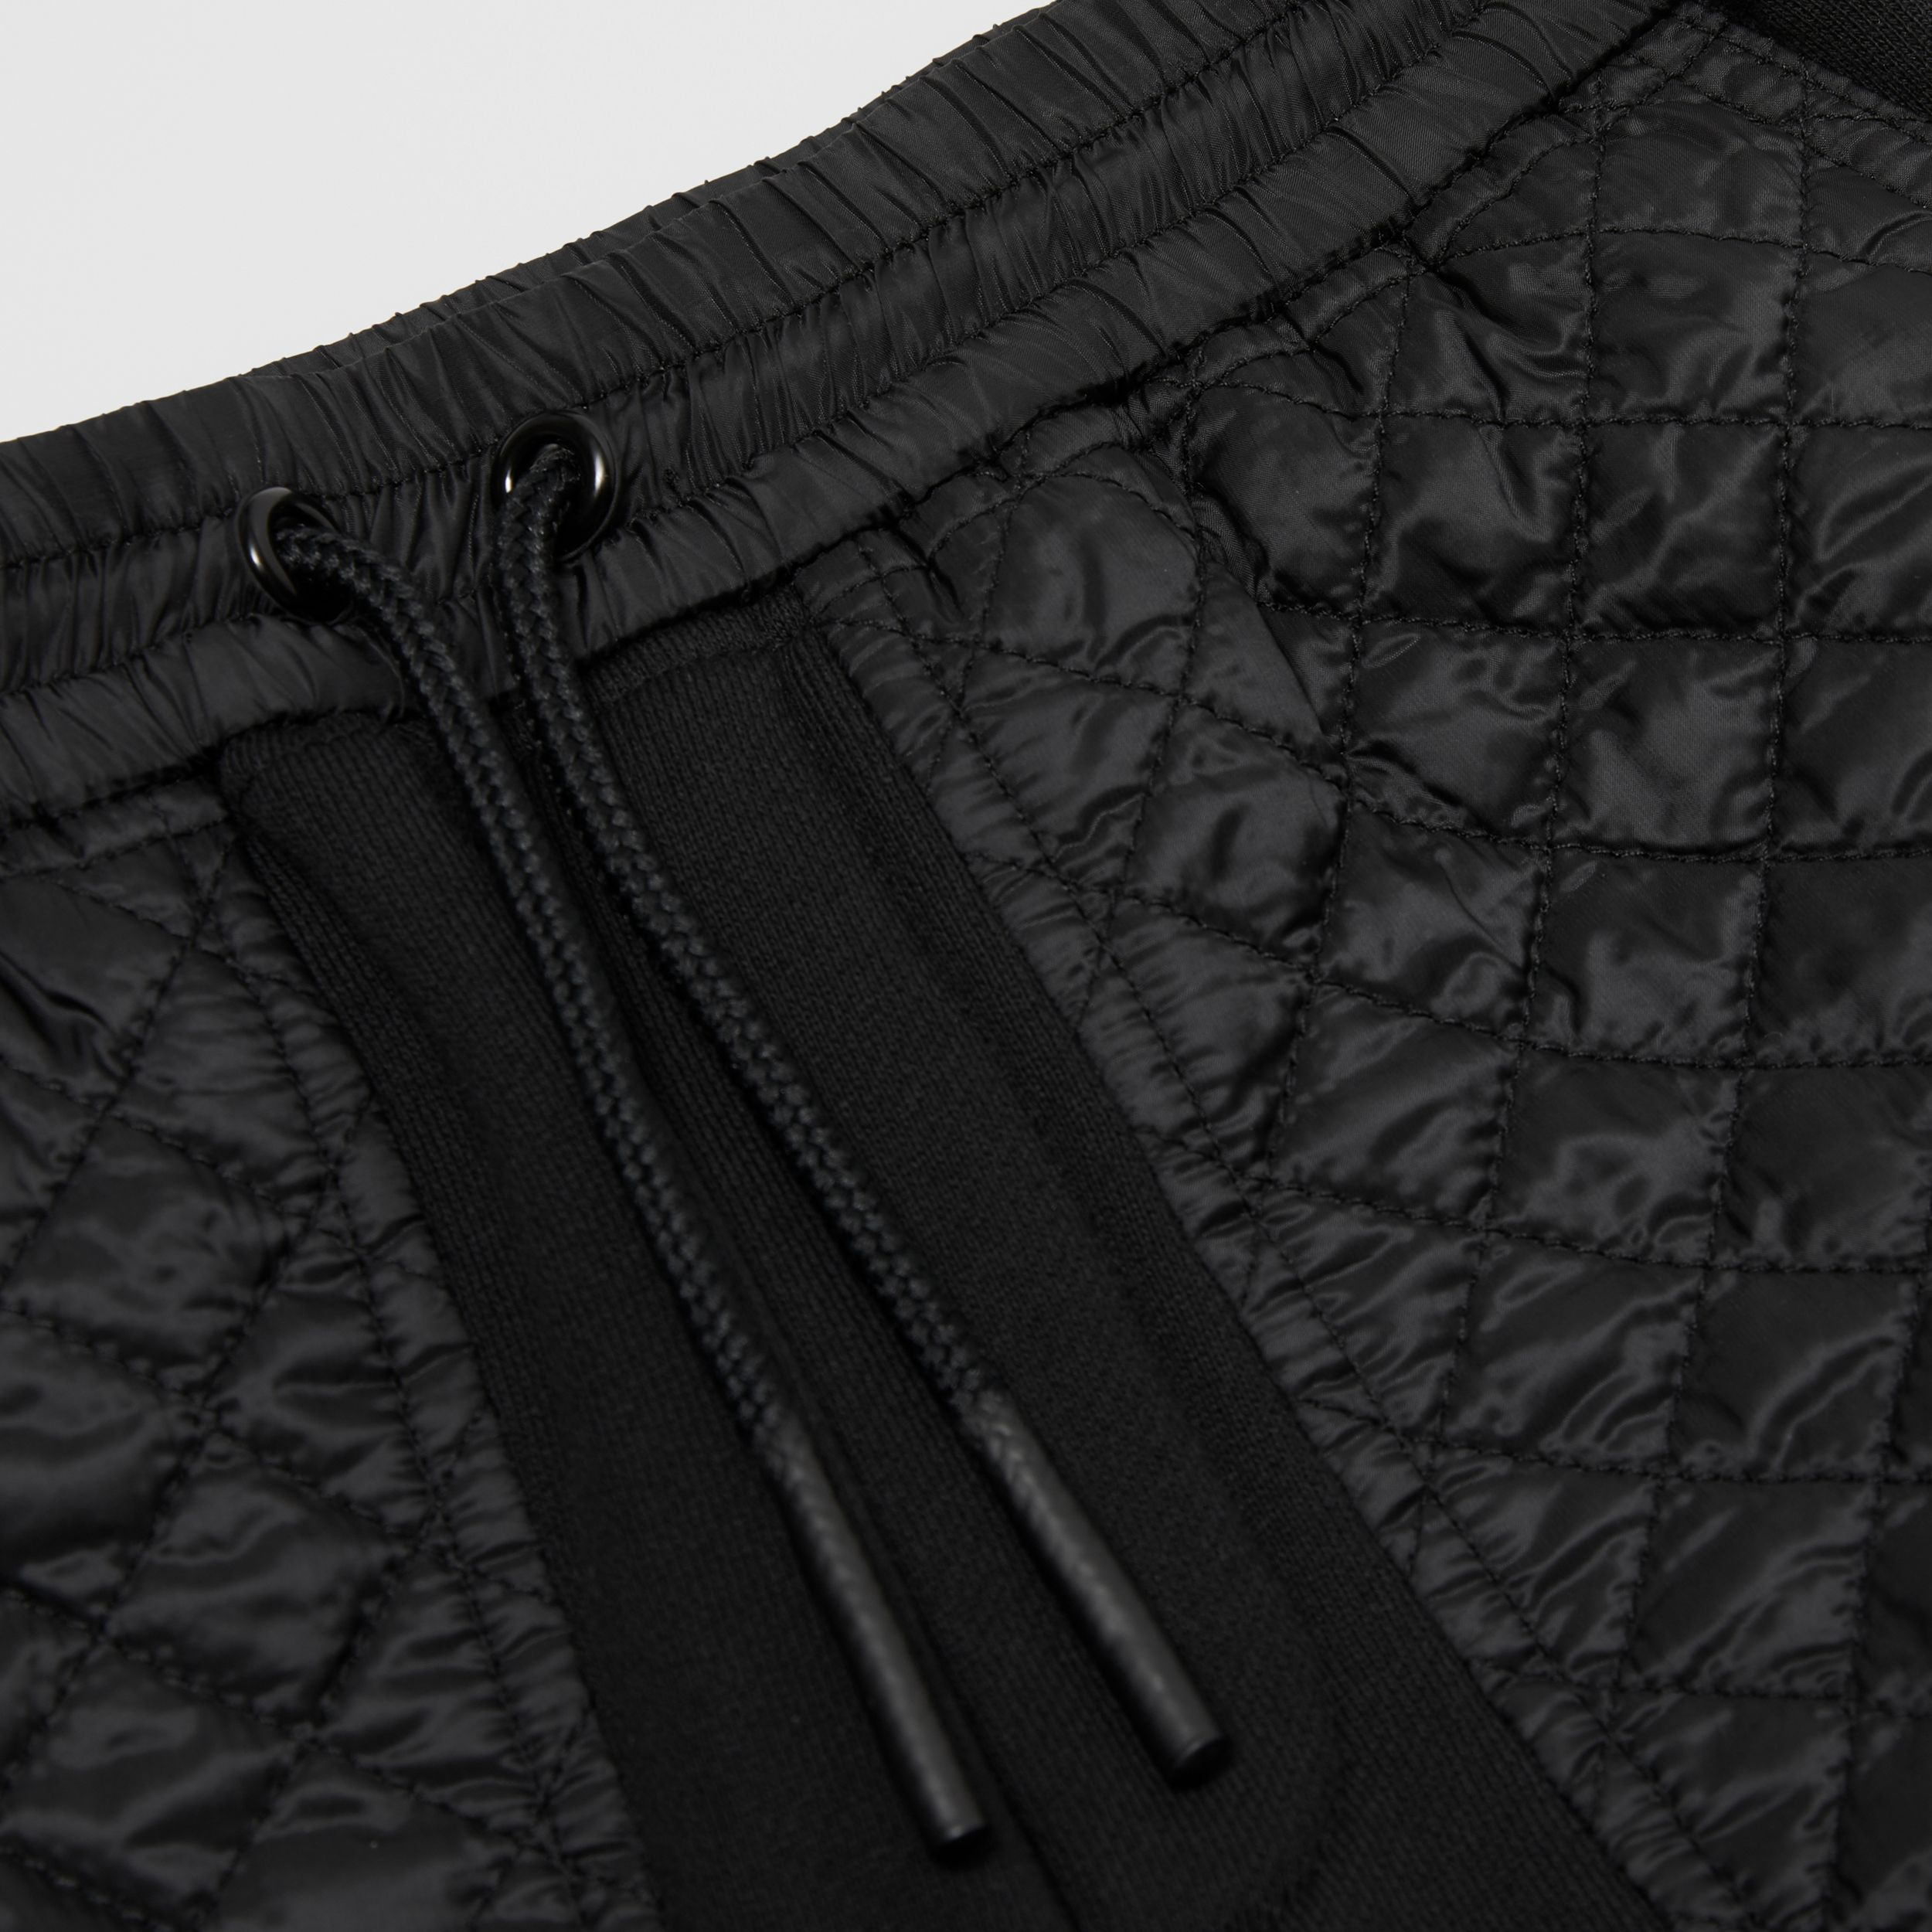 Monogram Quilted Panel Cotton Jogging Pants in Black | Burberry United States - 2